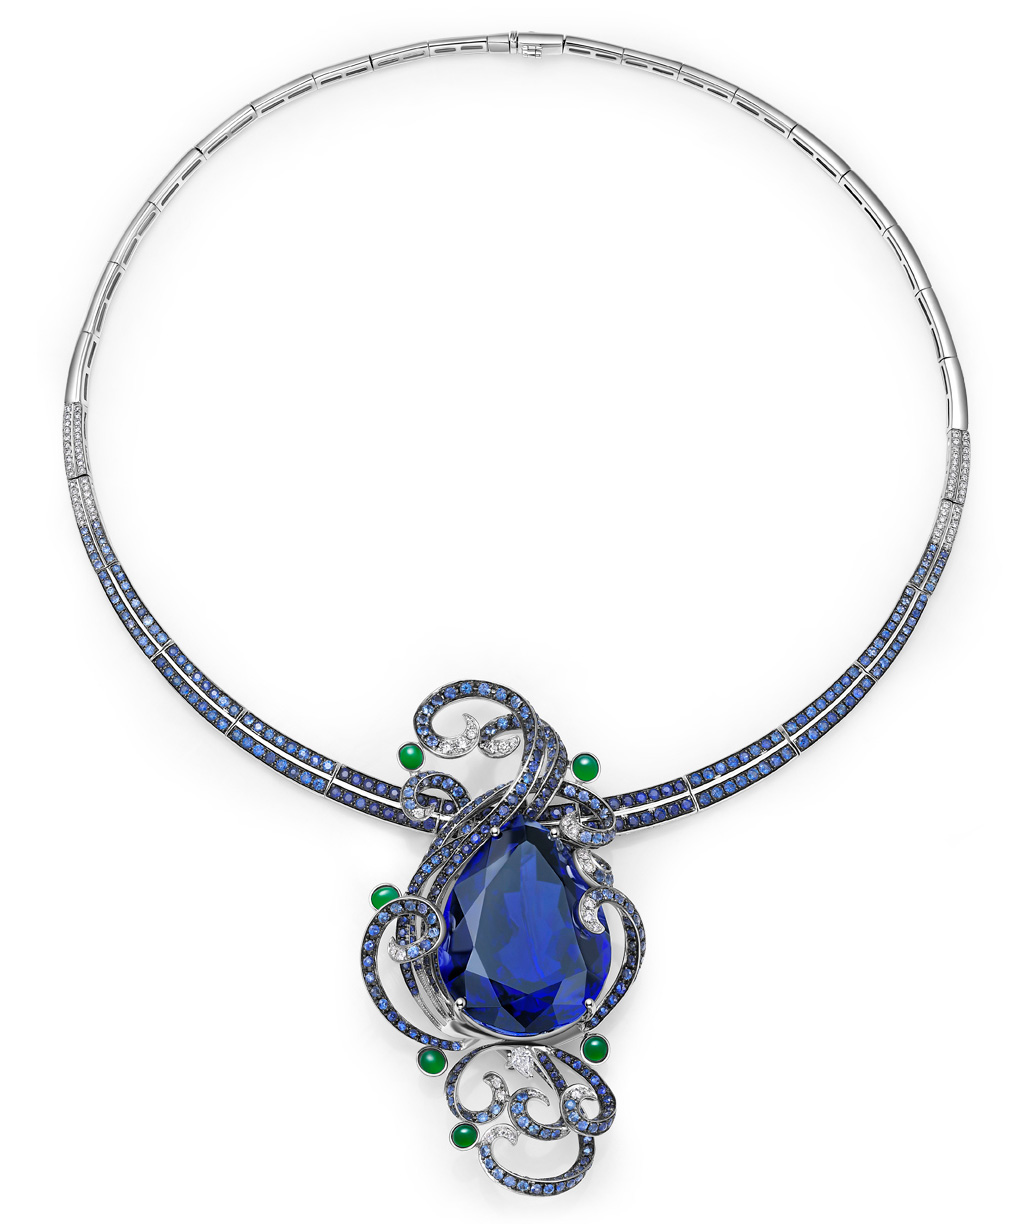 Fei Liu necklace with a 103 carats pear-cut tanzanite, blue sapphires, diamonds and jade